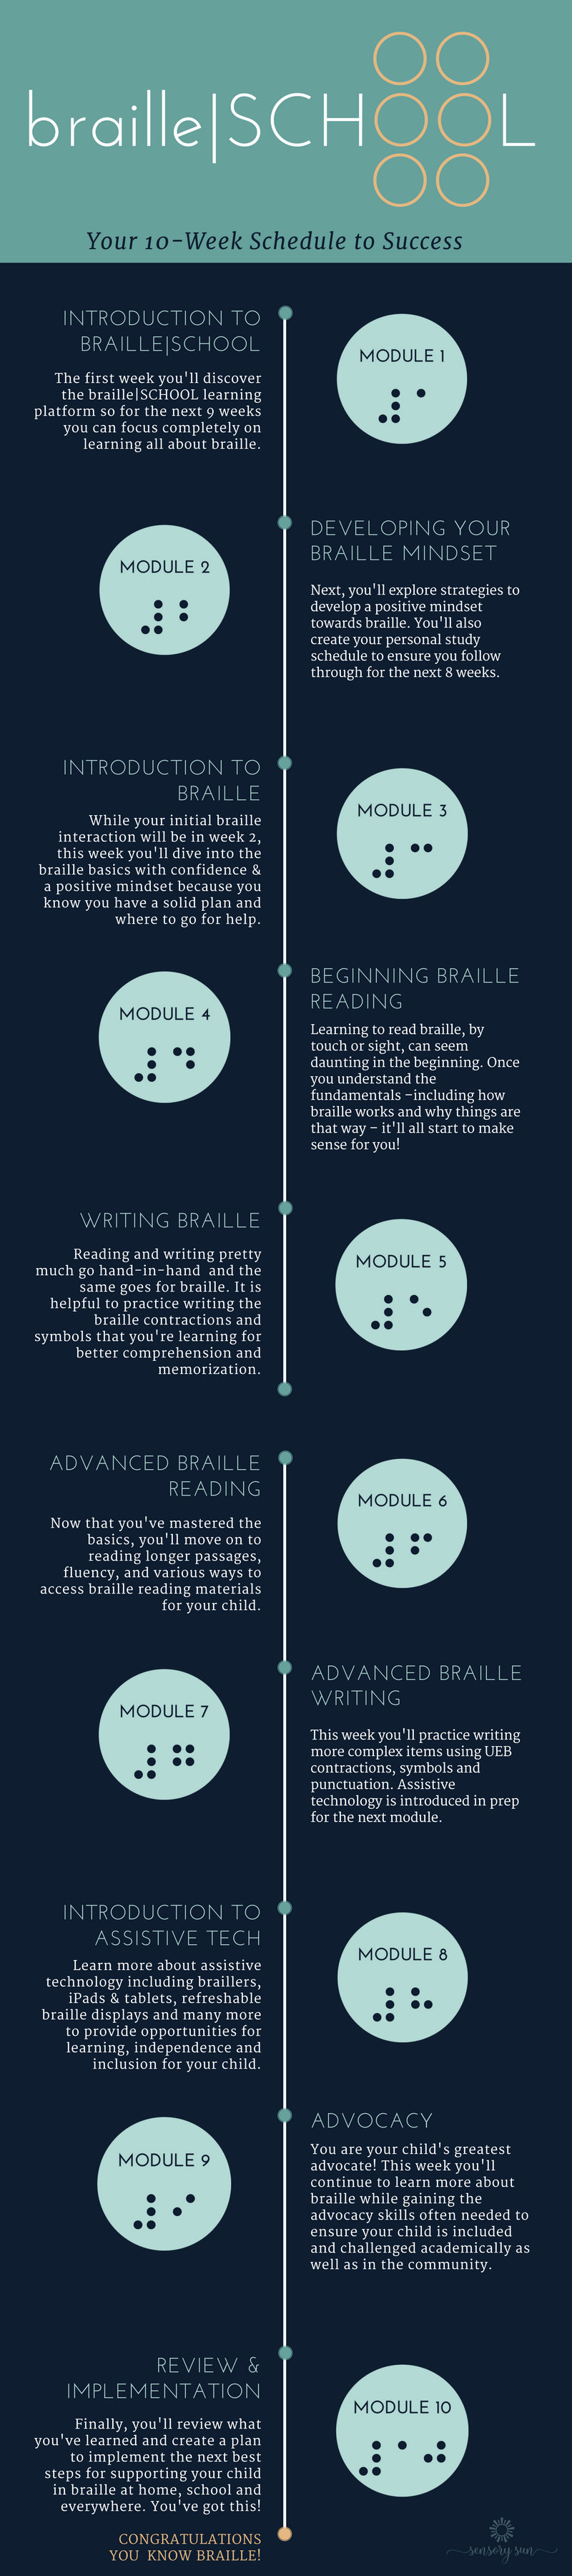 braille school 10-week schedule of modules